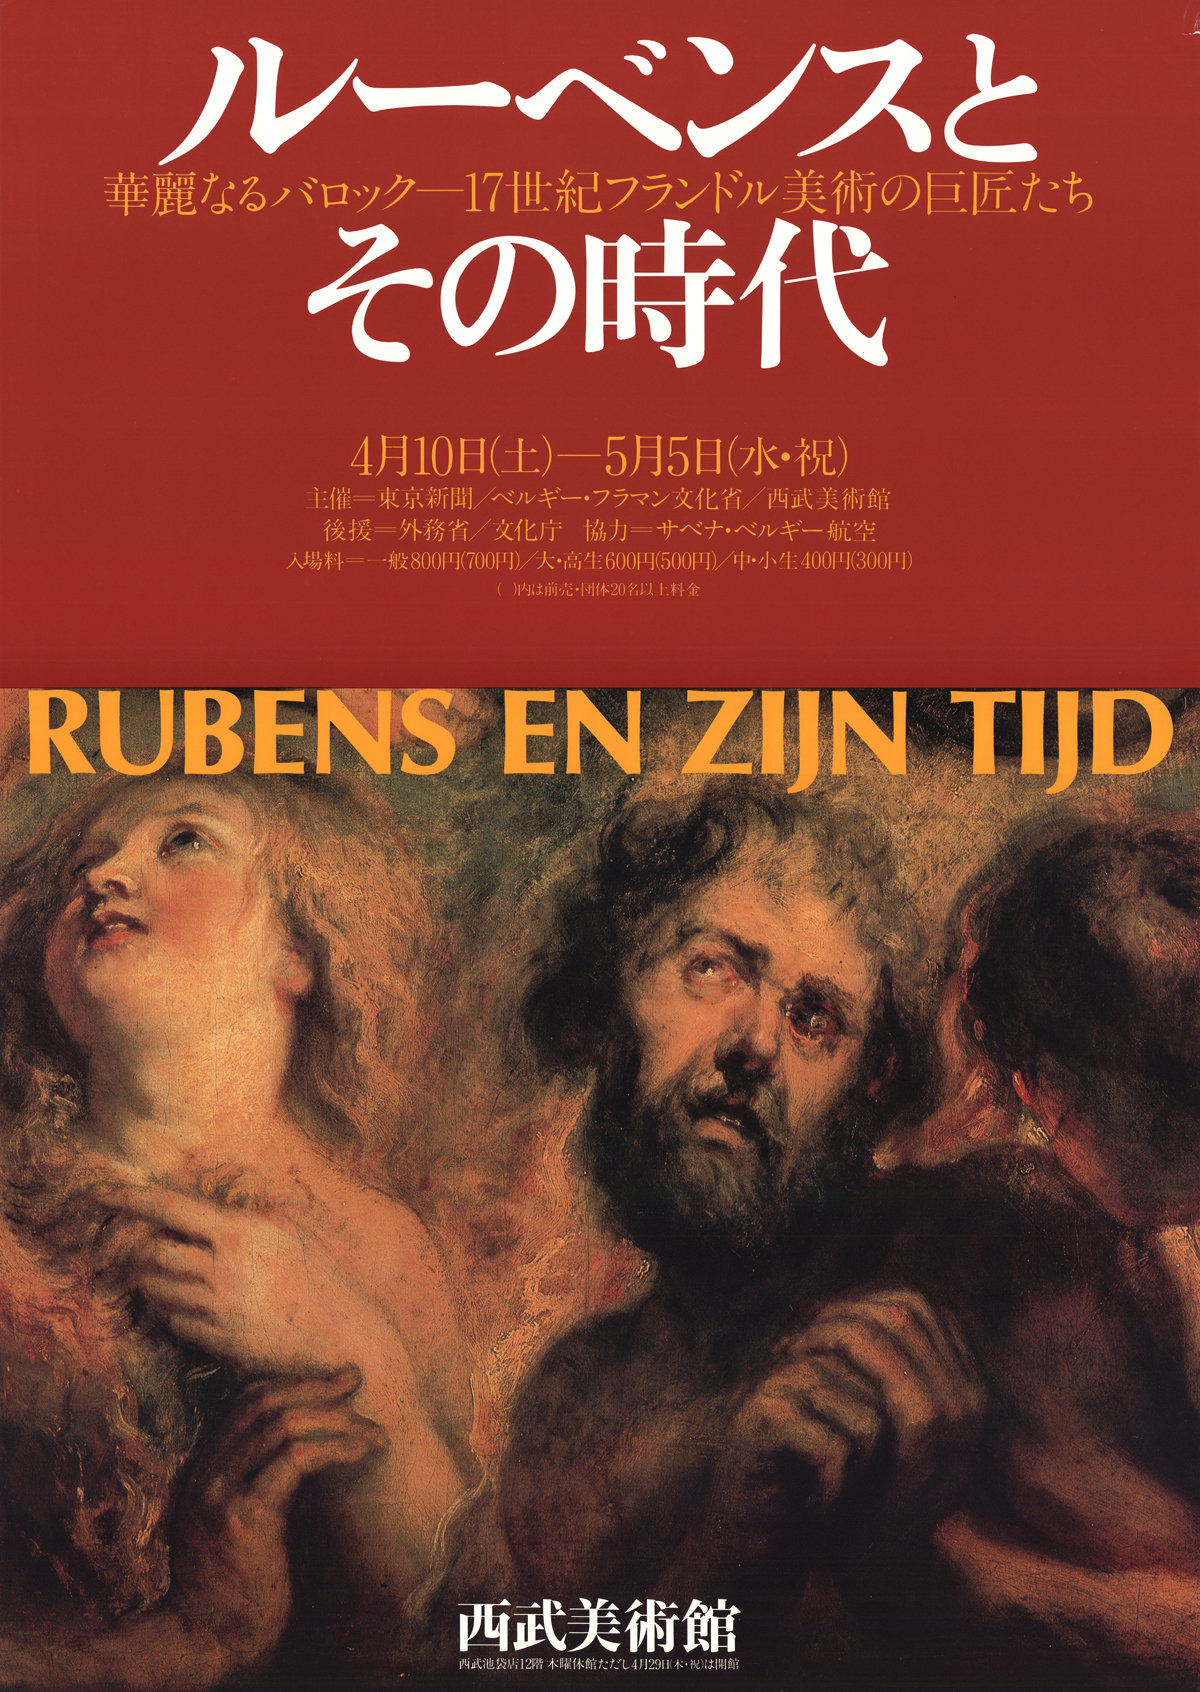 Peter Paul Rubens-Rubens and his Era-1982 Poster Rubens, Peter Paul Fine